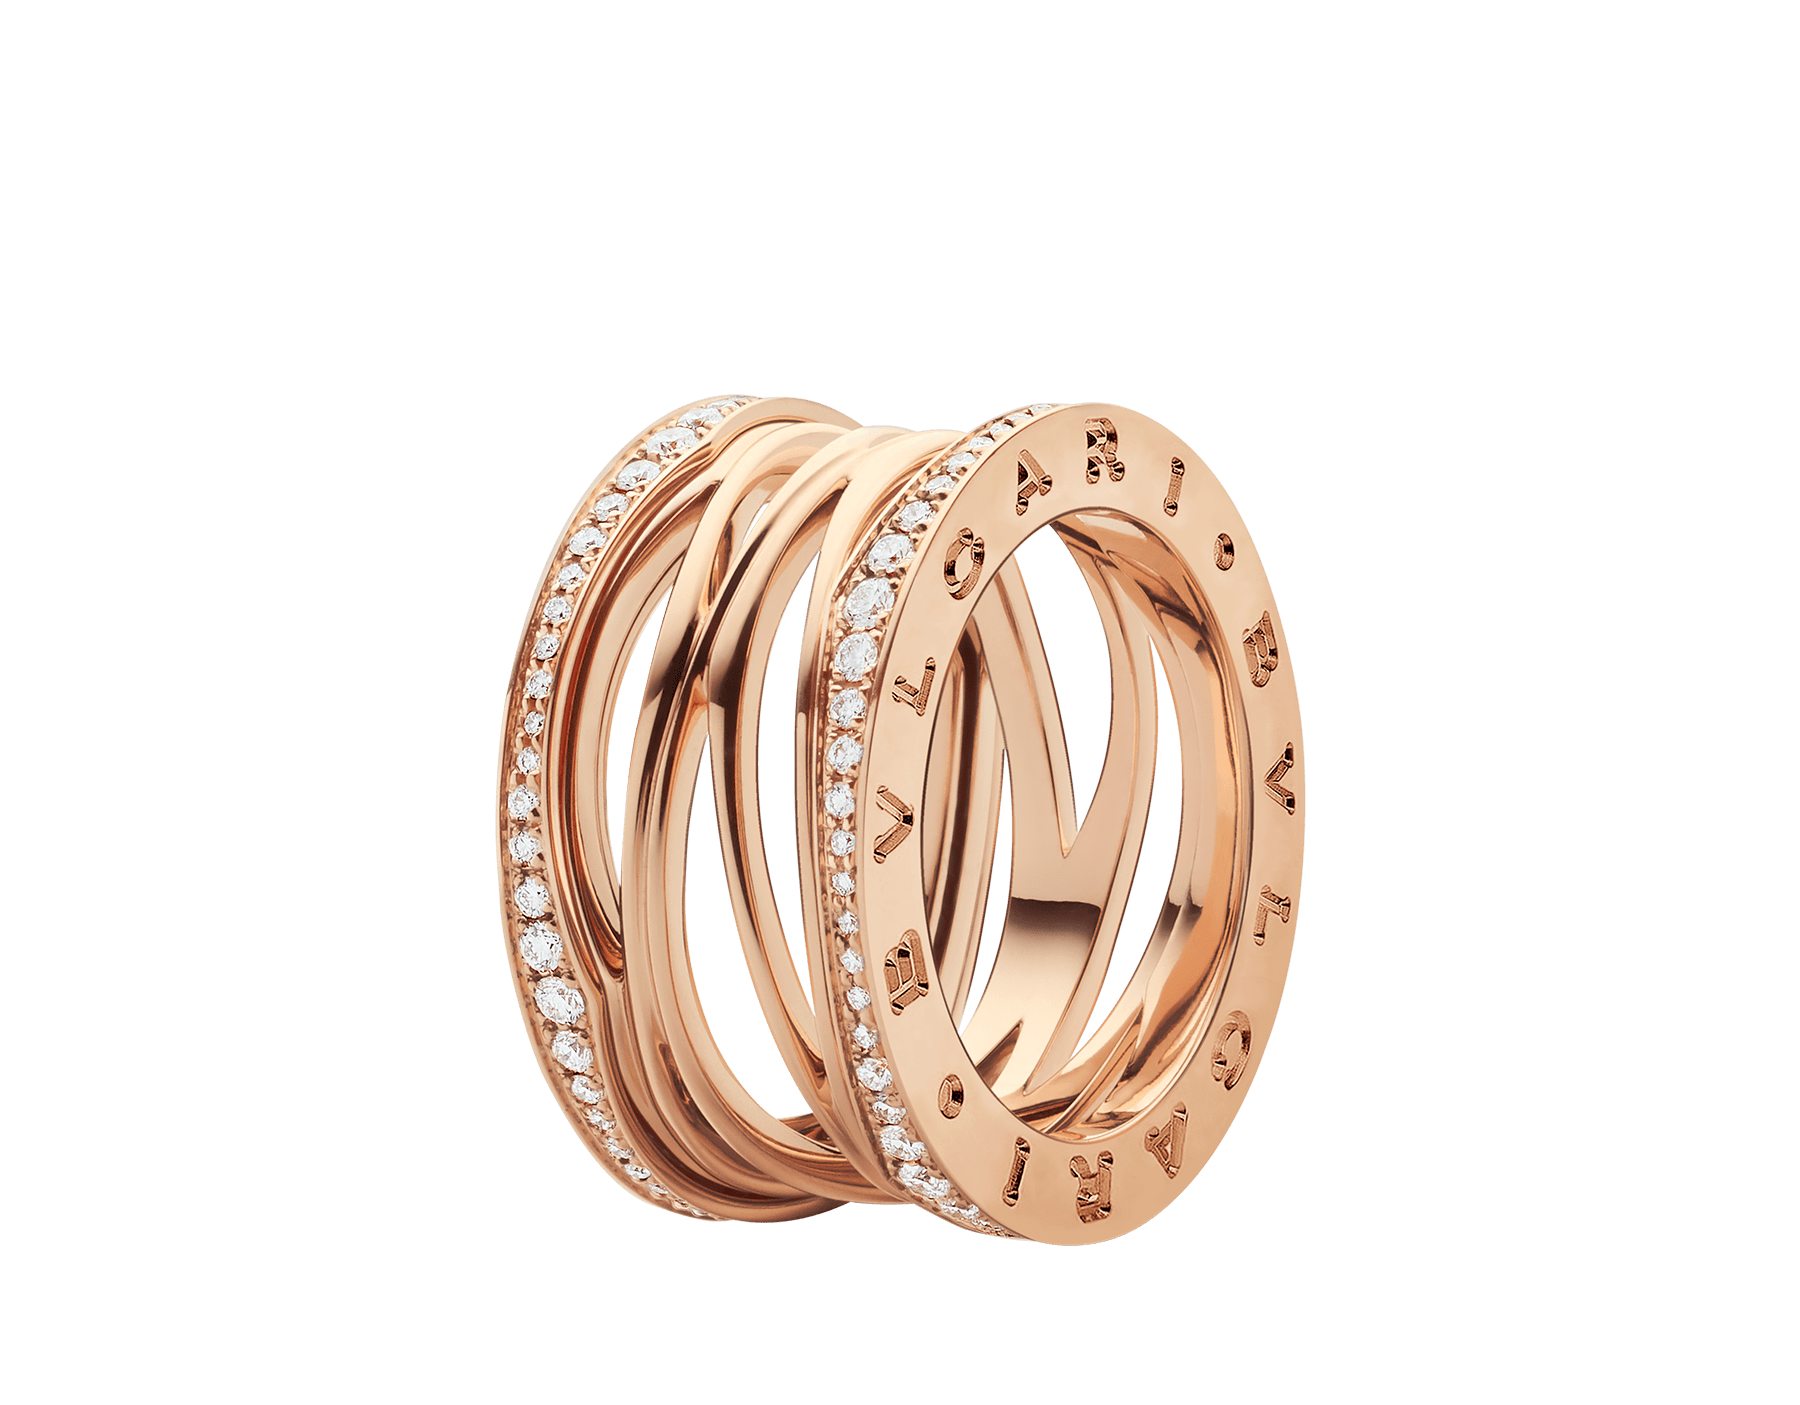 B.zero1 Design Legend four-band ring in 18 kt rose gold set with pavé diamonds (0.61 ct) on the edges. B-zero1-4-bands-AN858125 image 1